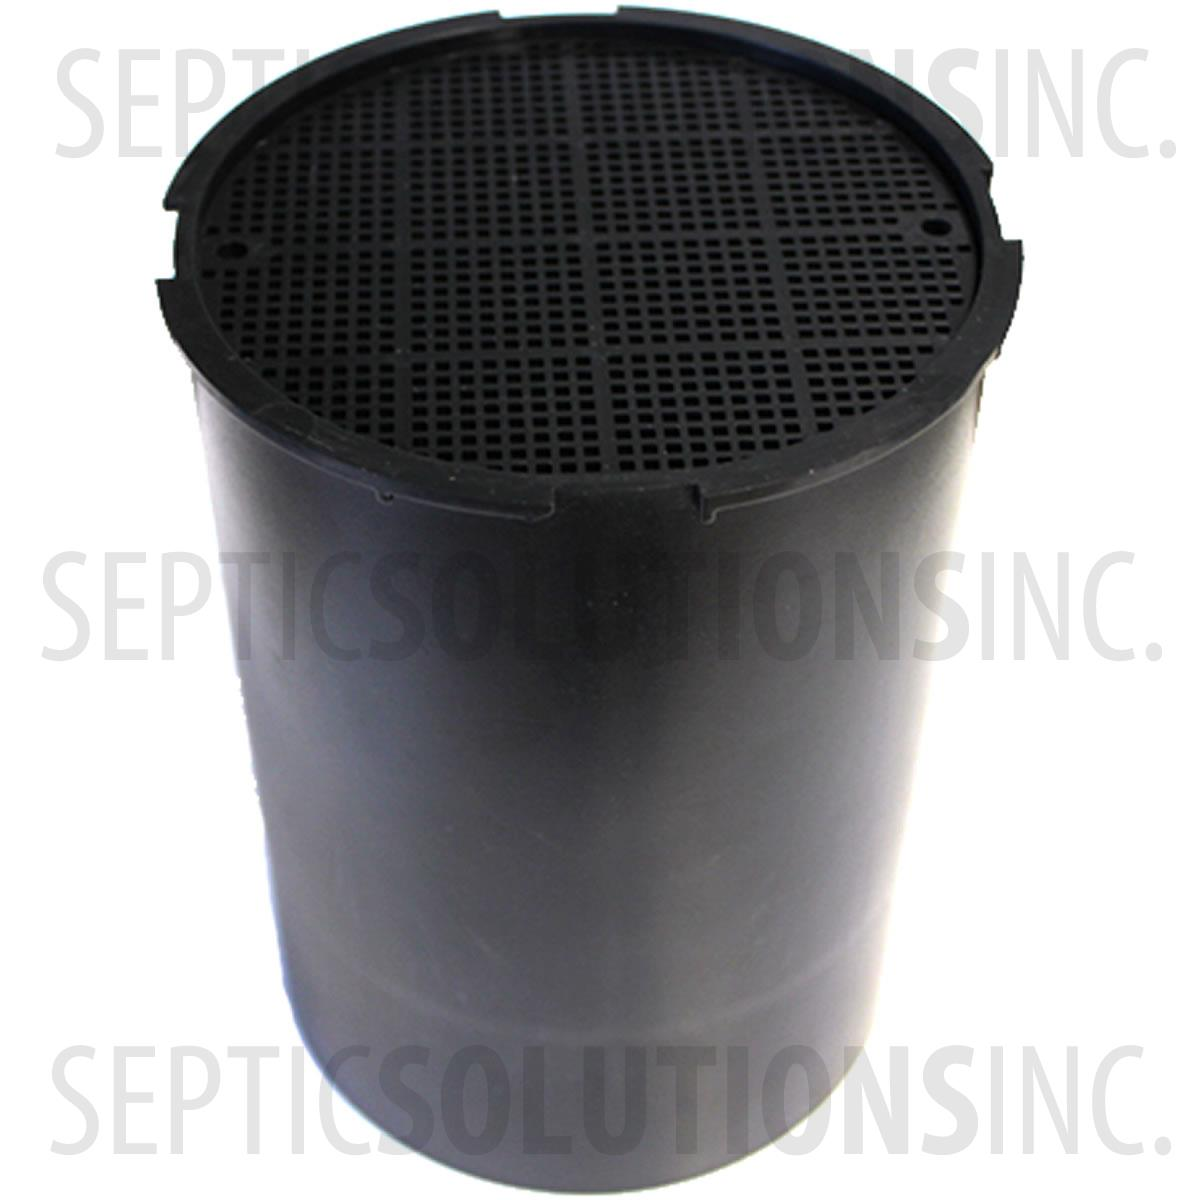 Vent Pipe Odor Filter For 1 5 Quot Pvc Vent Stacks Activated Carbon Vent Stack Filter